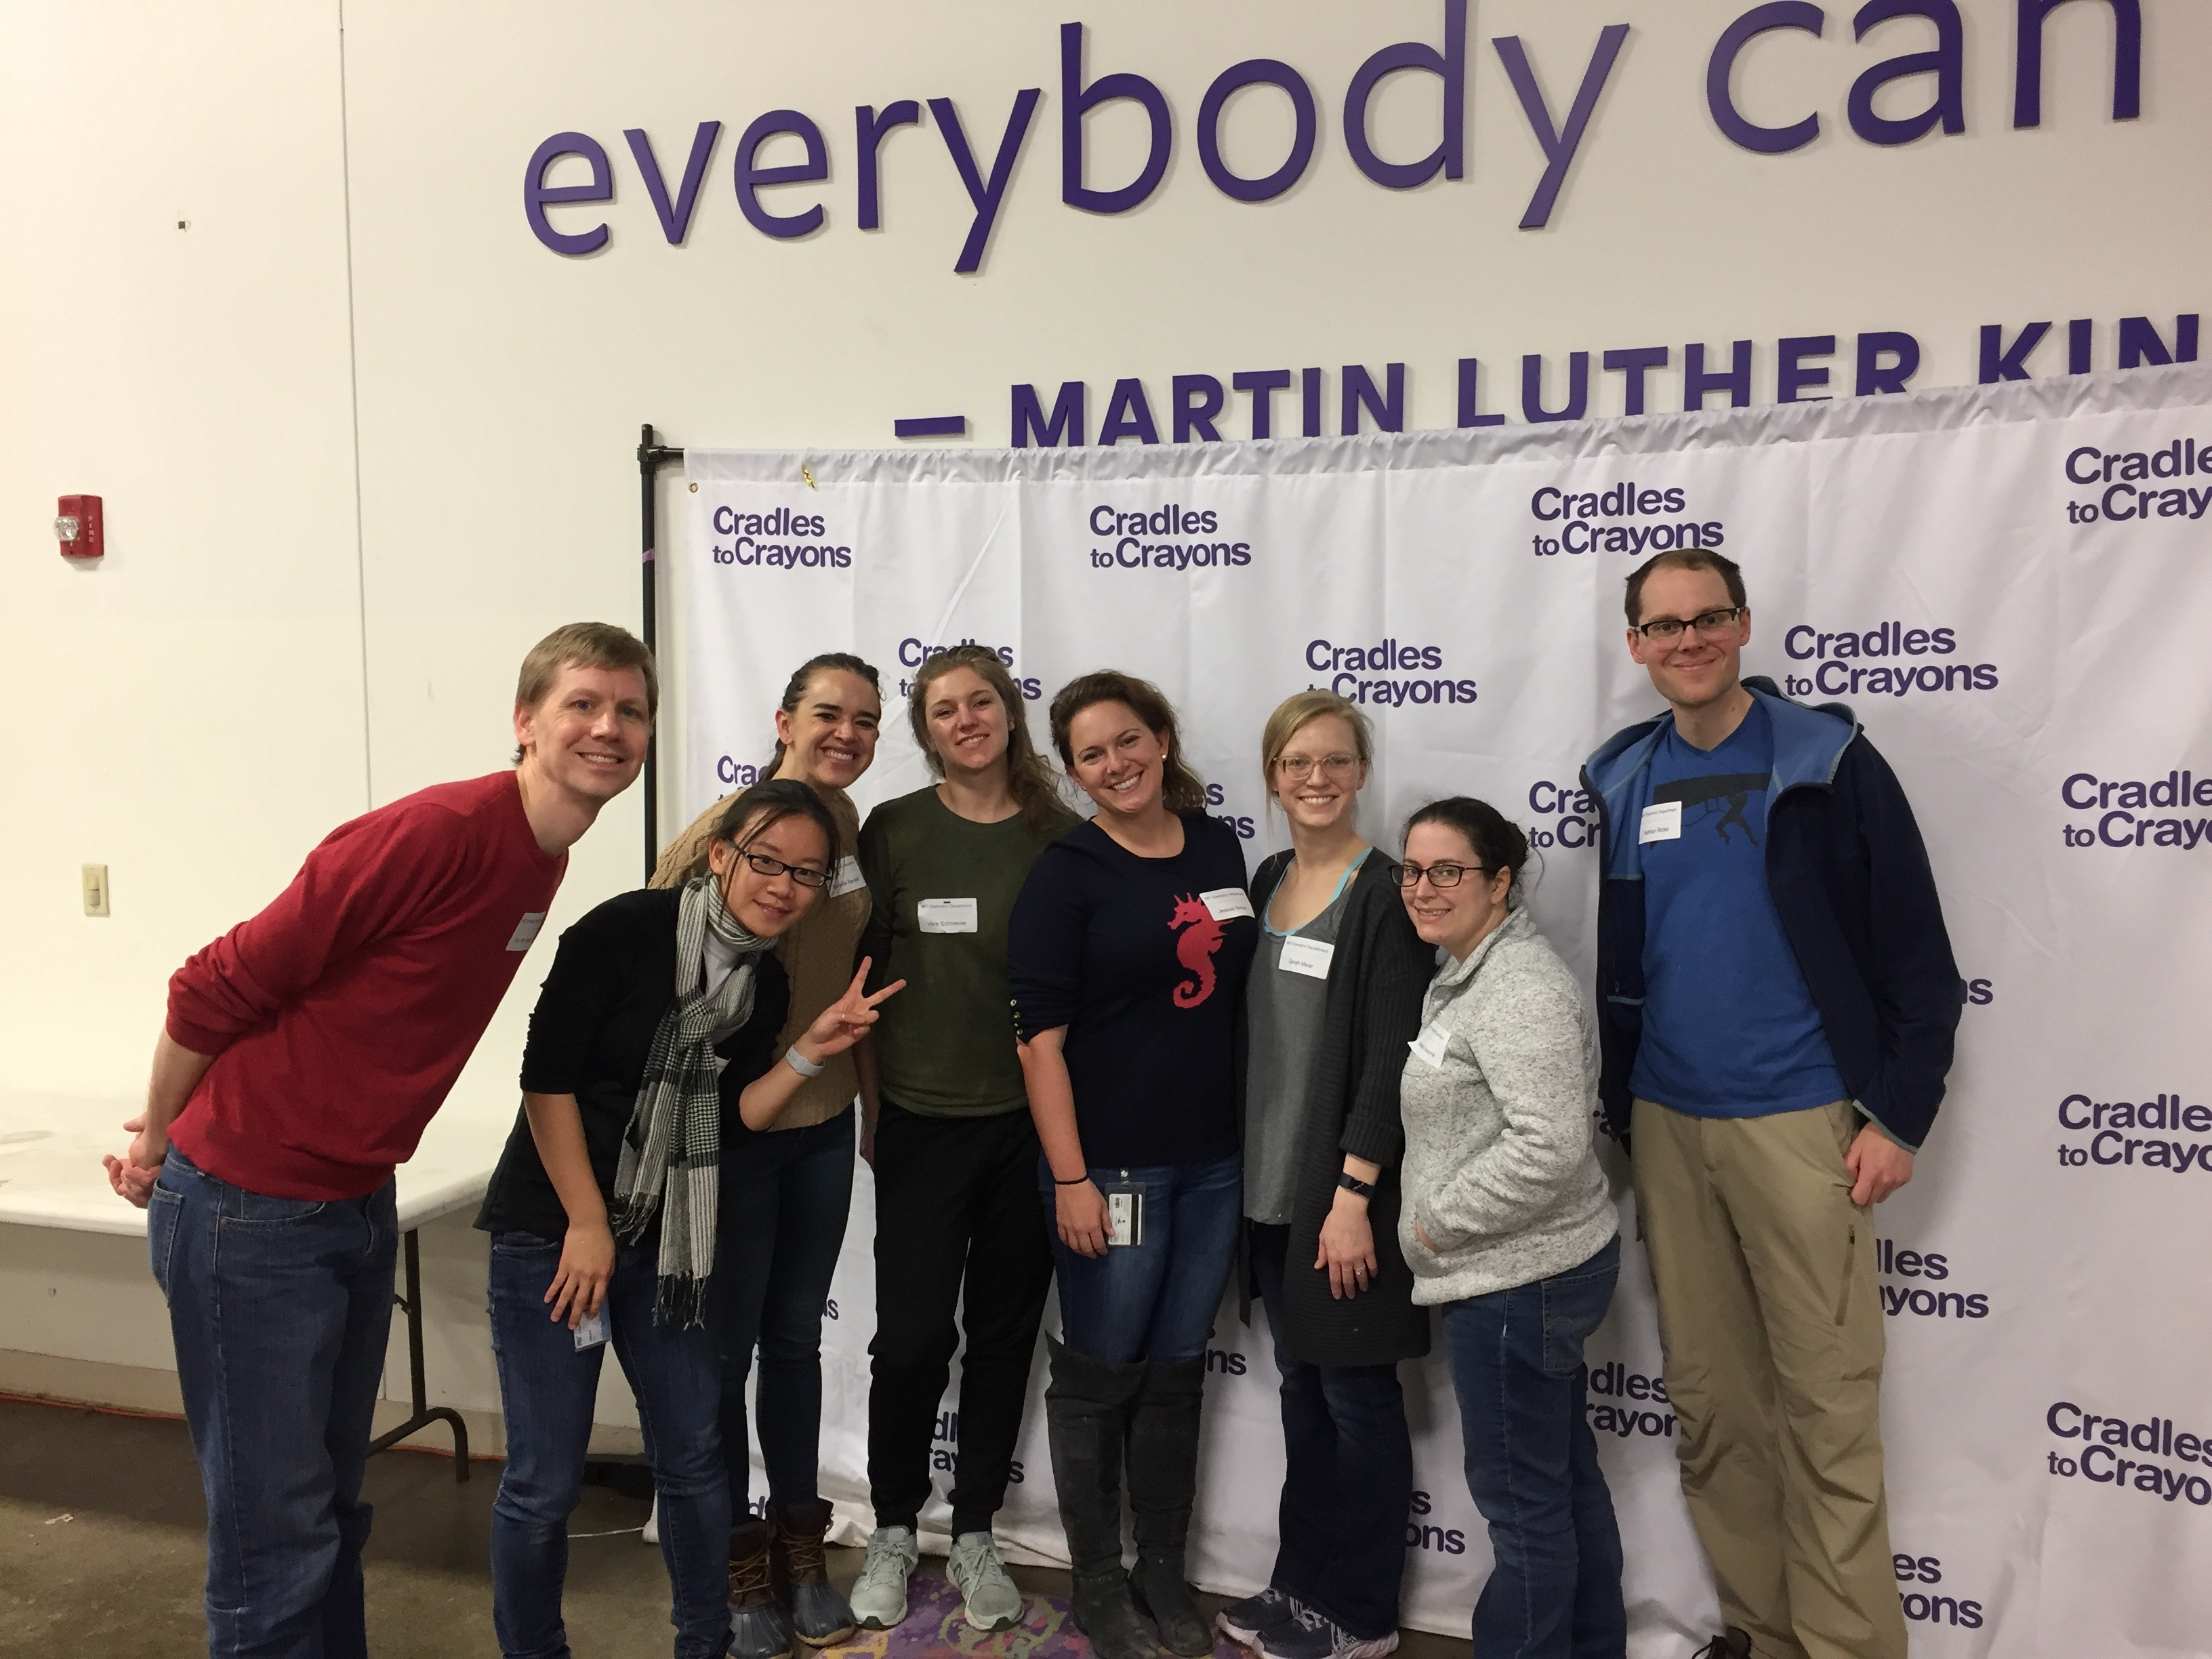 A group smiles while volunteering at a warehouse.